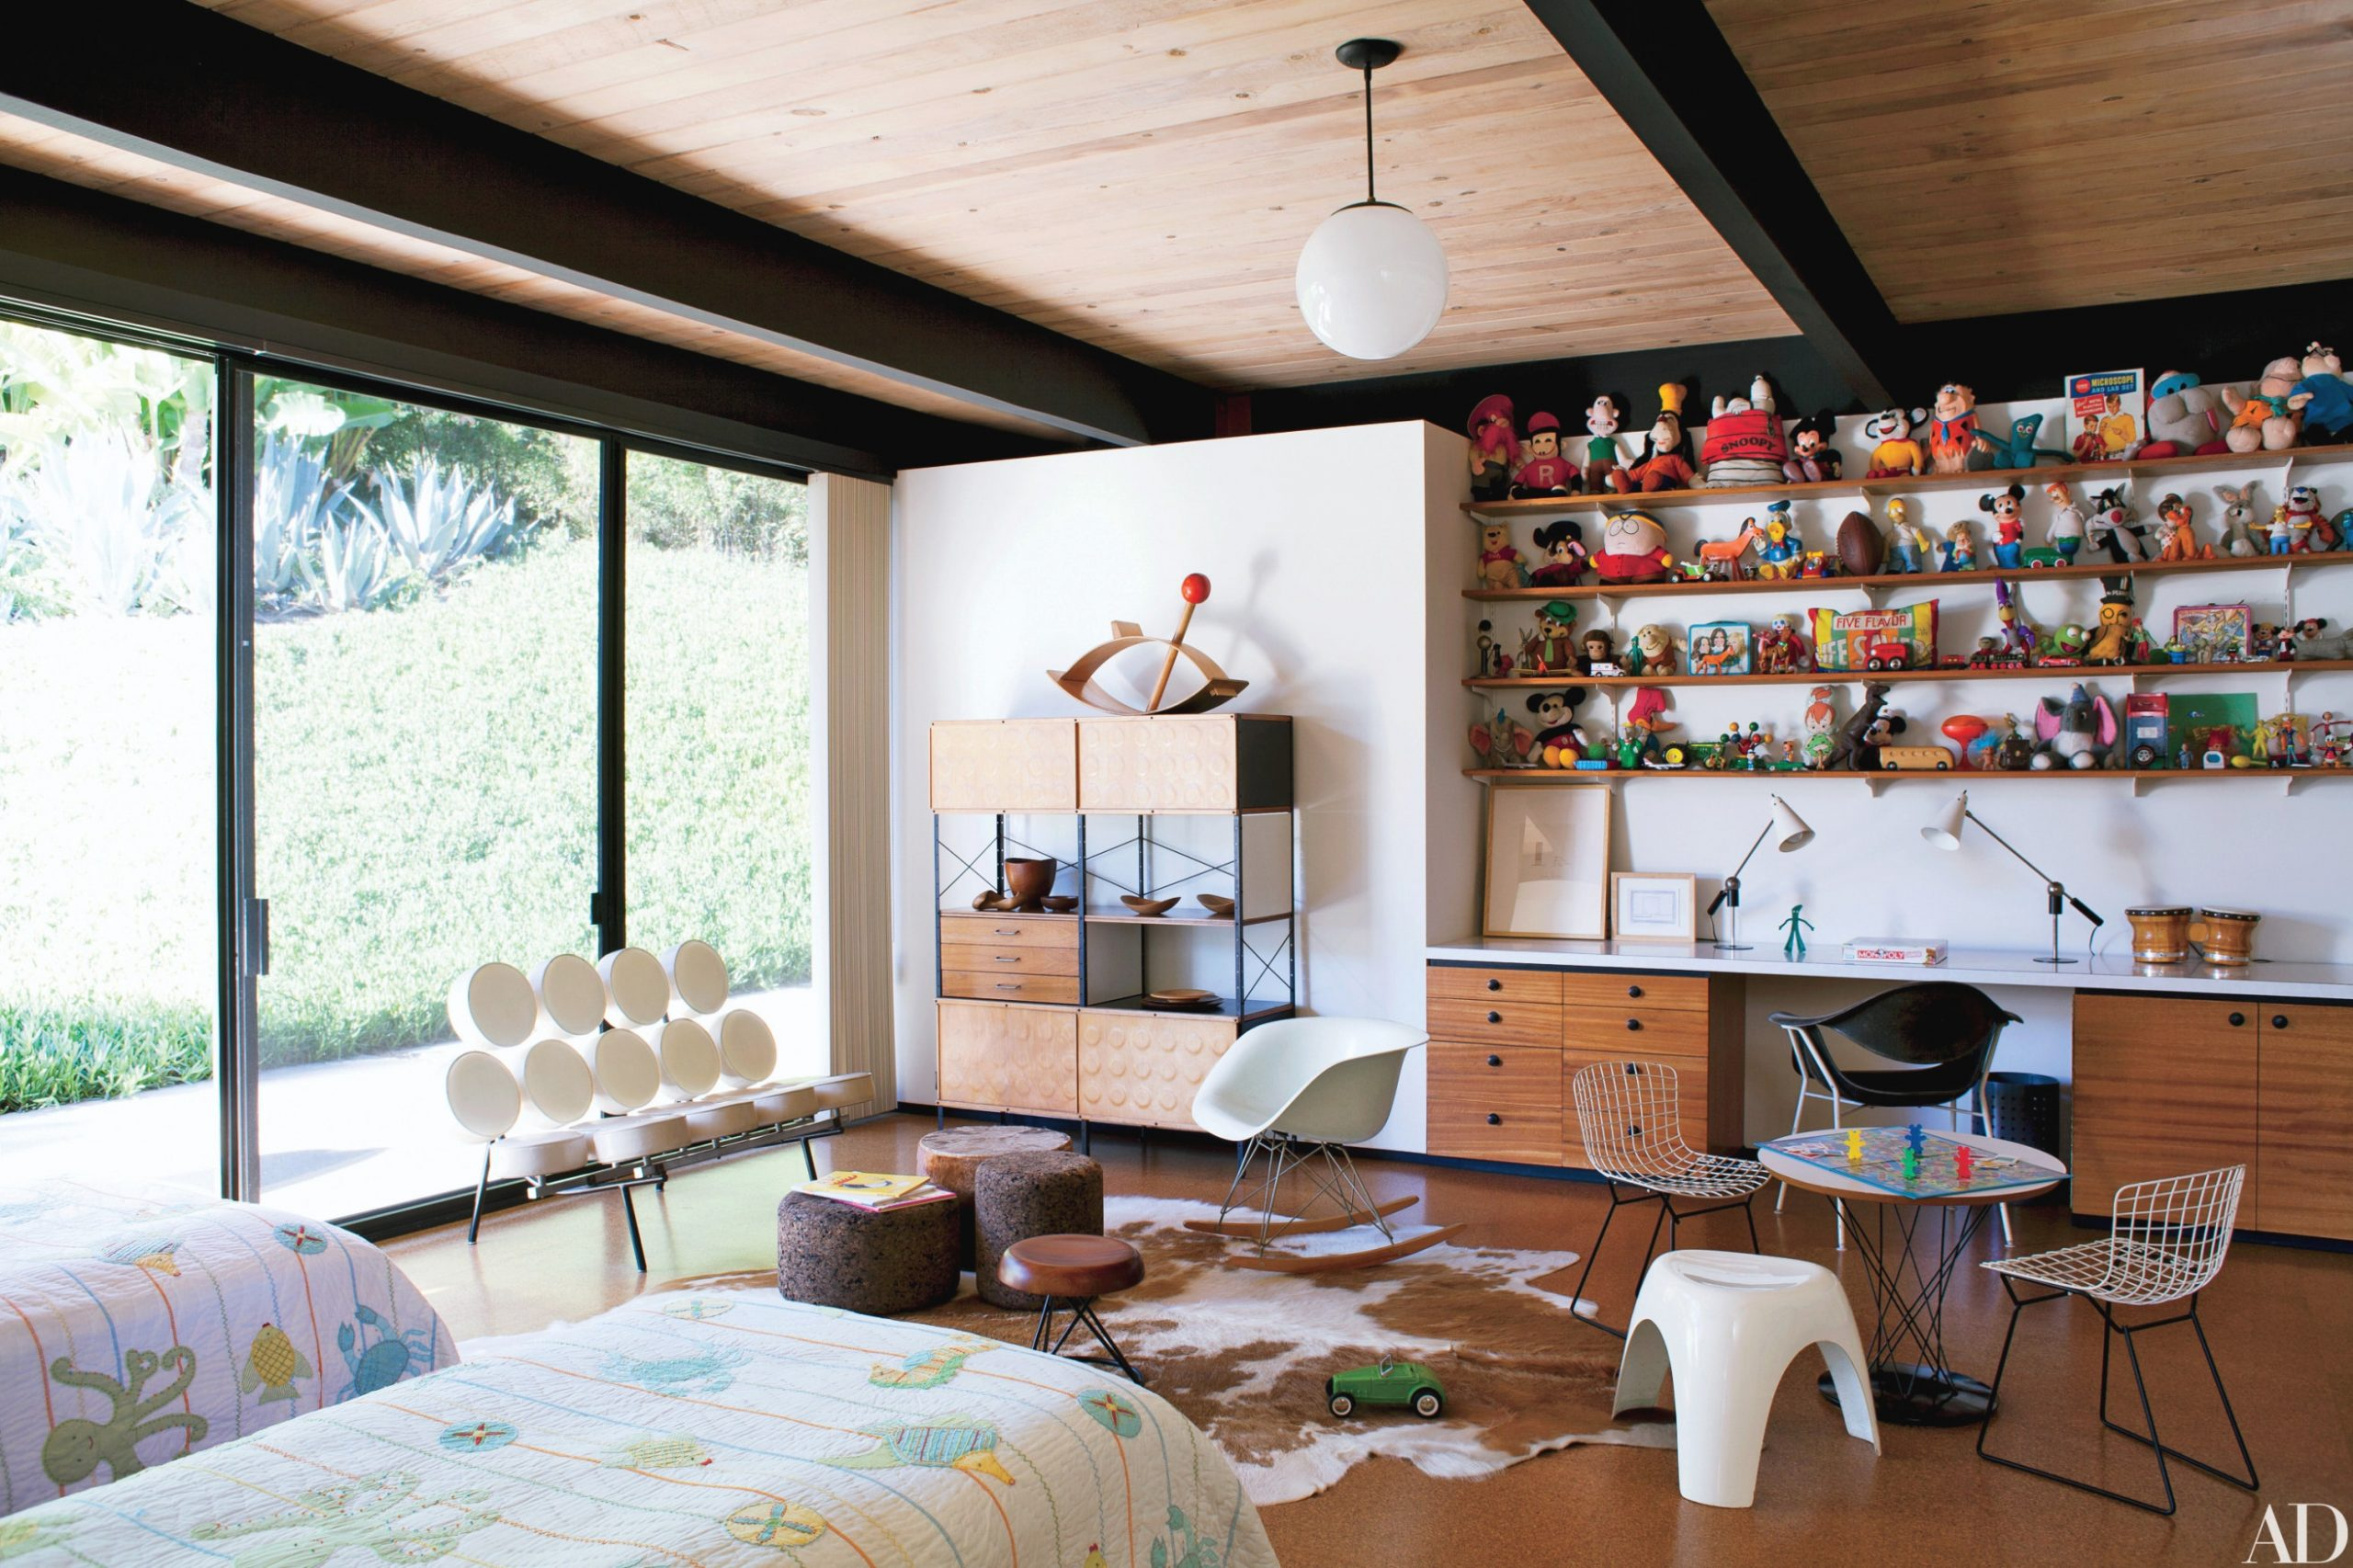 11 Toy Storage Ideas For Even The Most Chaotic Kids' Rooms with Toy Storage Ideas Living Room